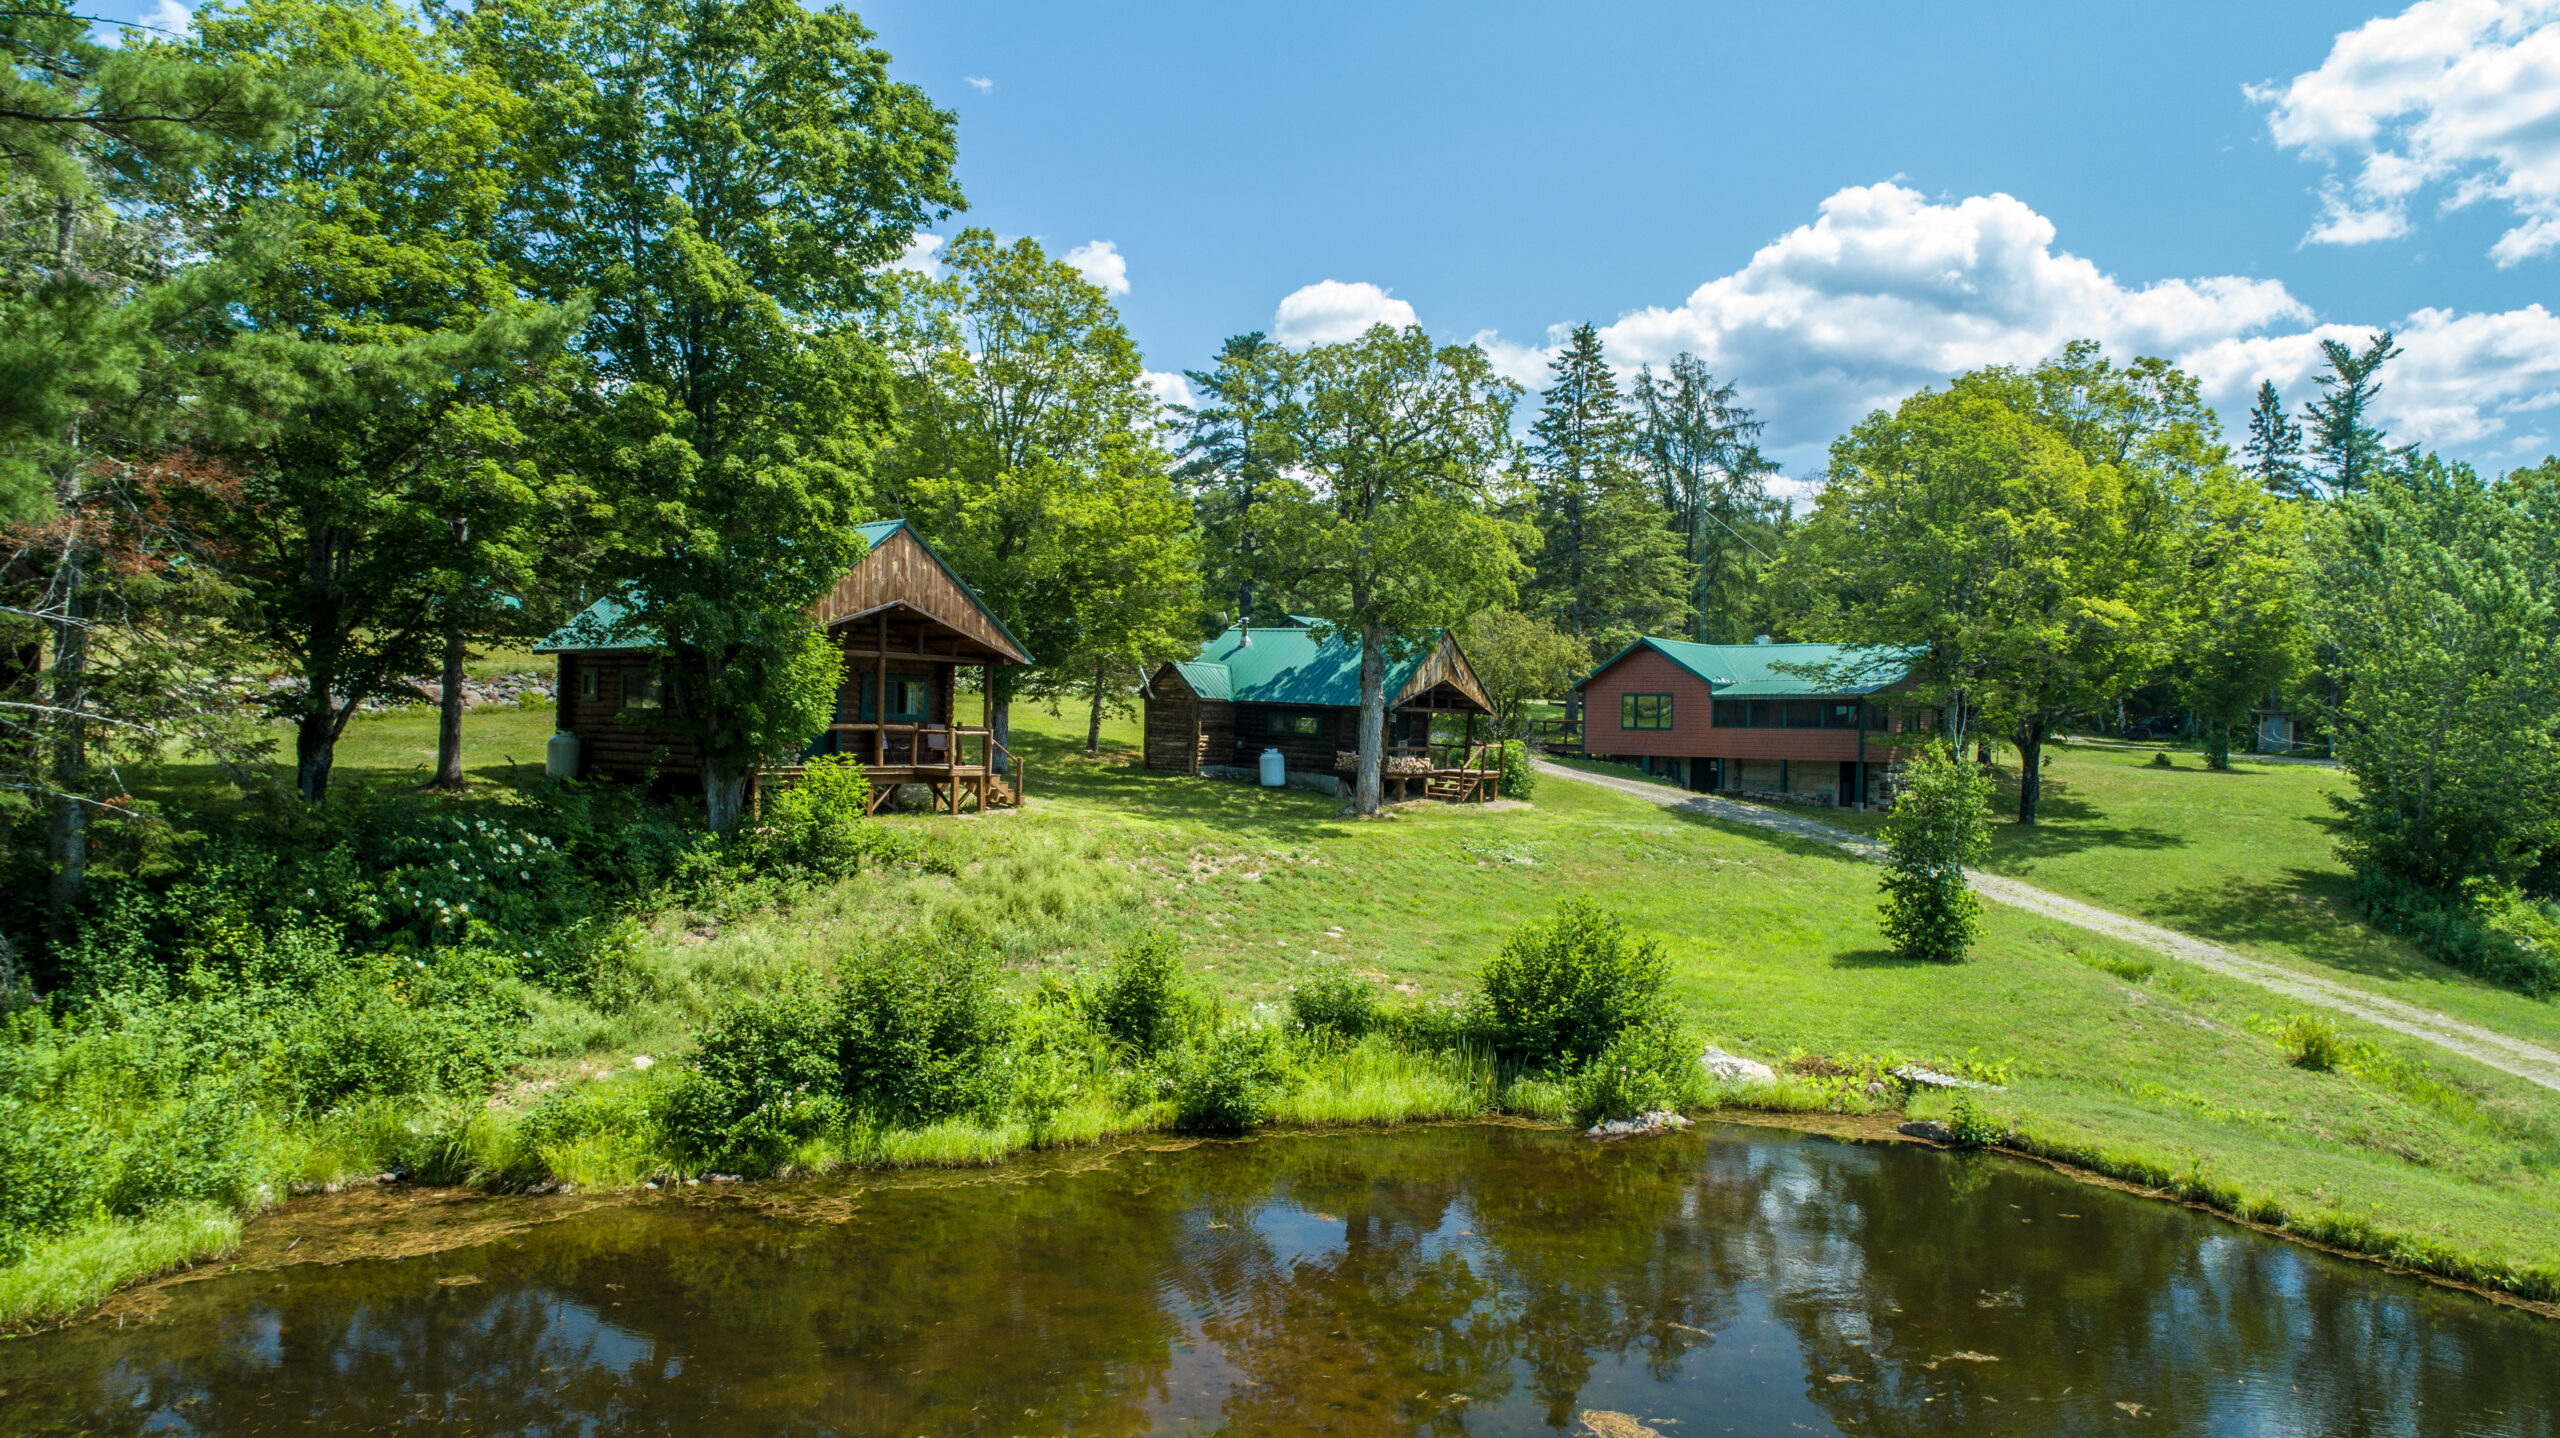 Bowlin Camps in the Katahdin Region. This photo shows a few of its many Cabins.